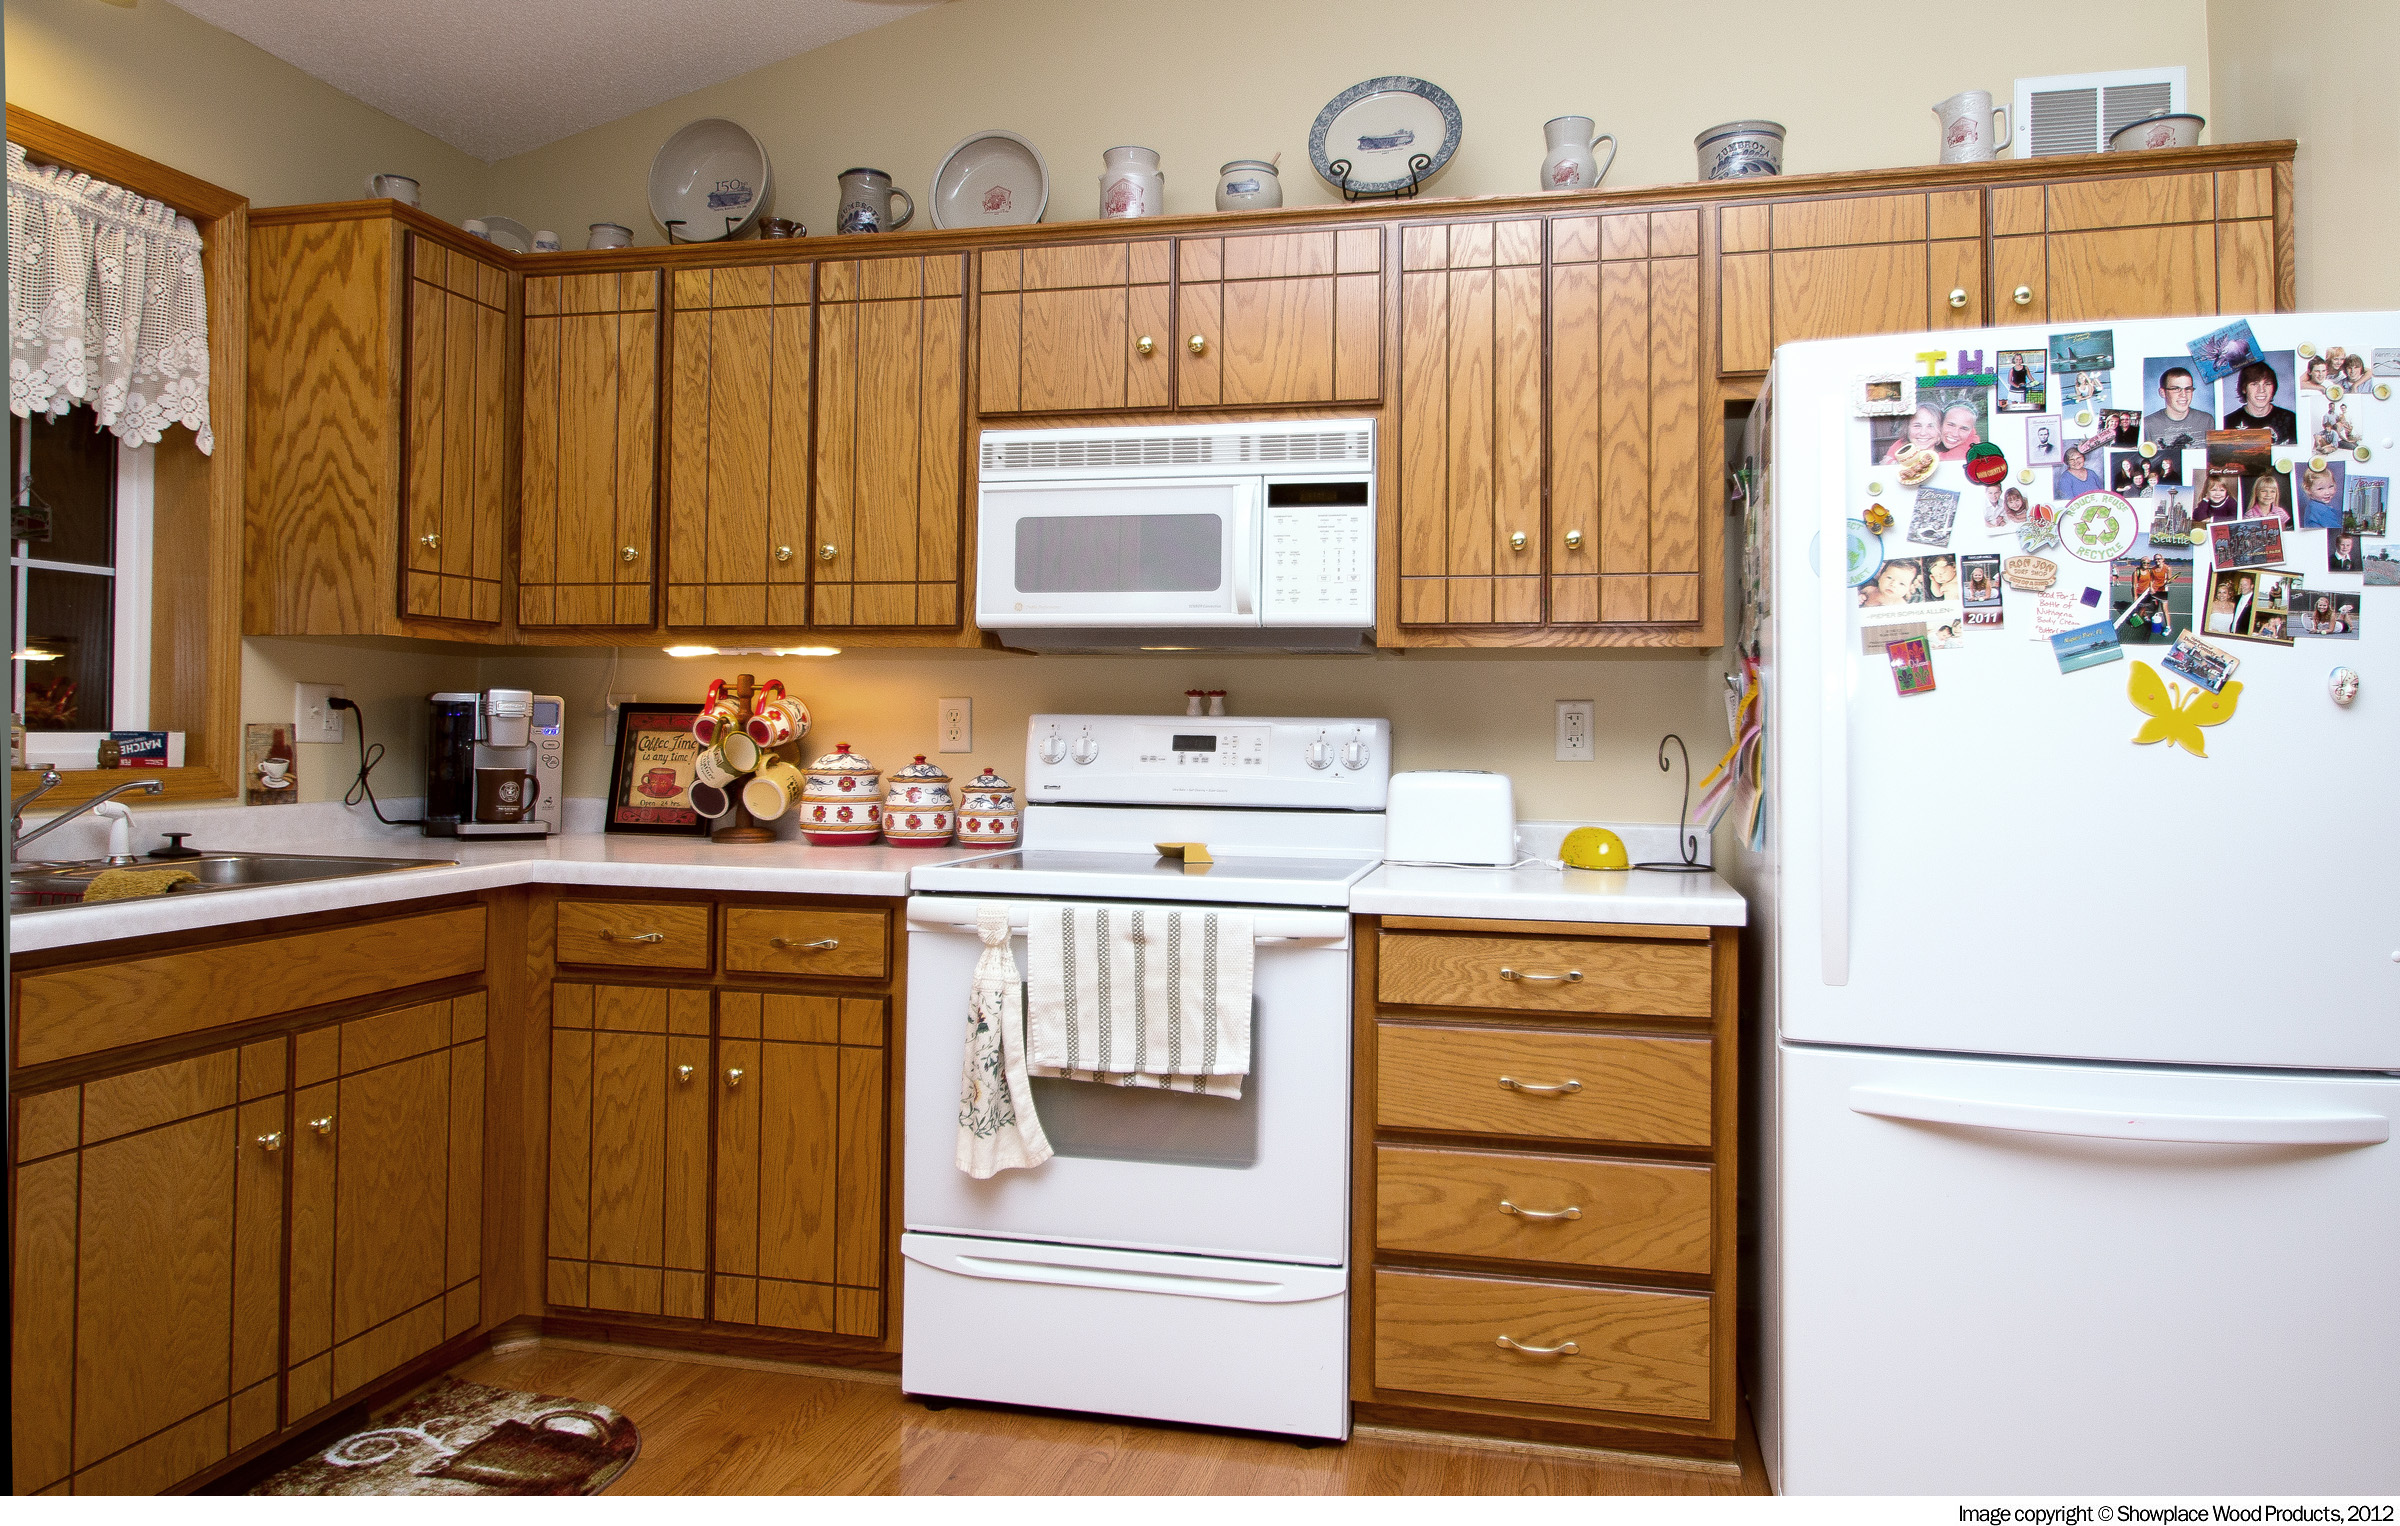 refinishing kitchen cabinets refinishing kitchen cabinets